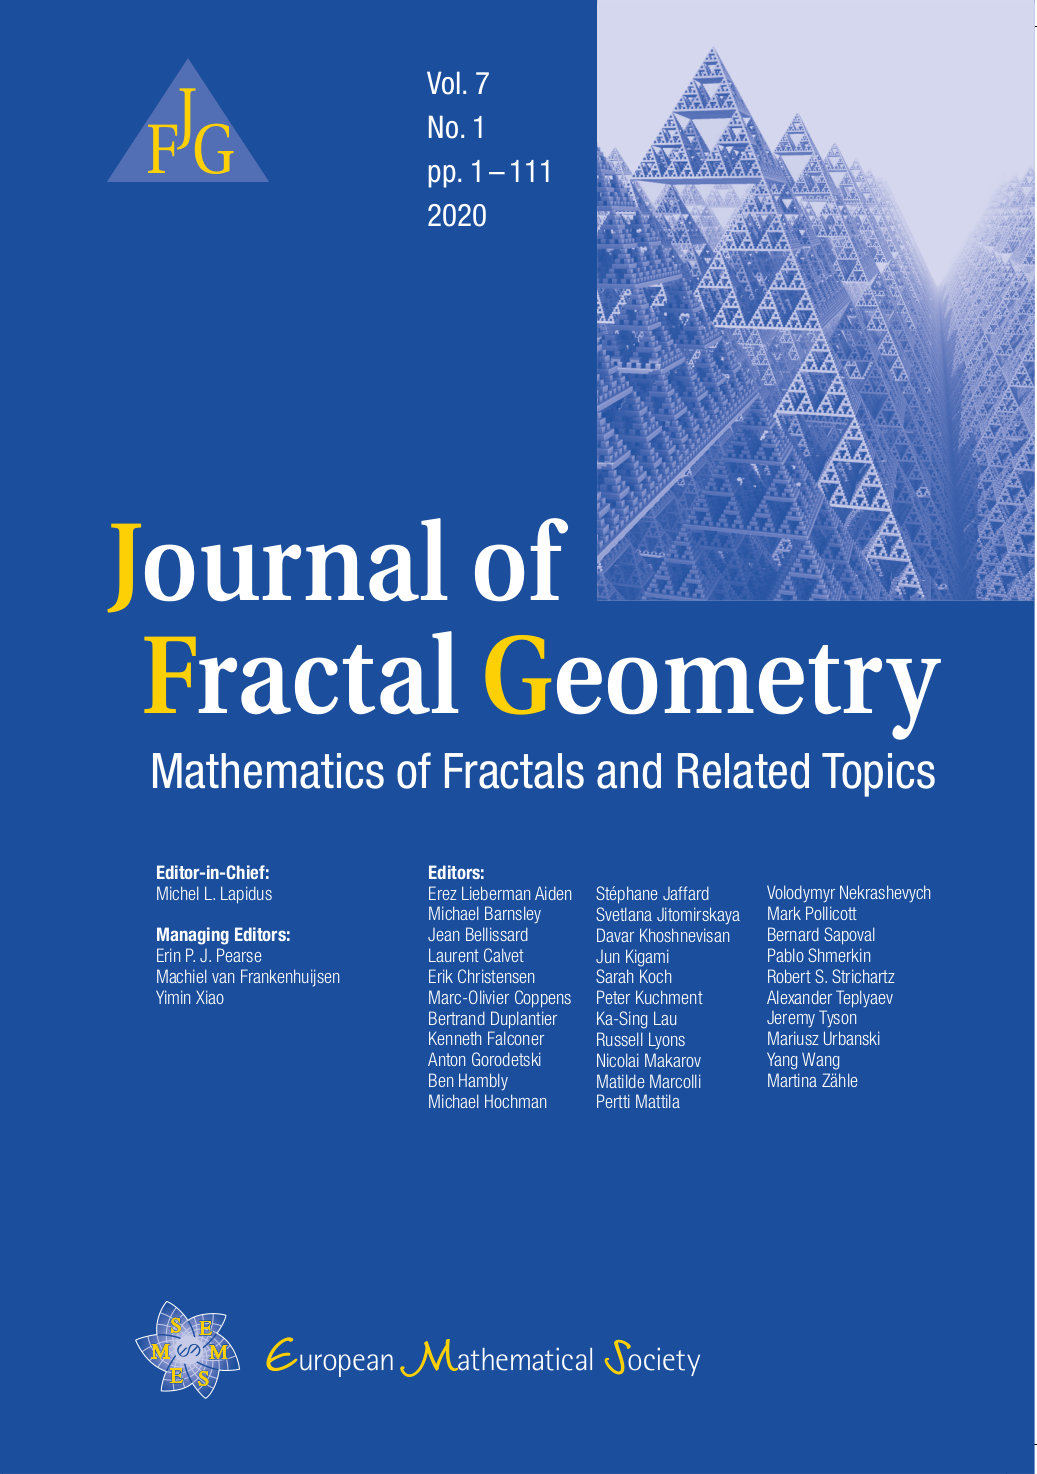 JFG cover